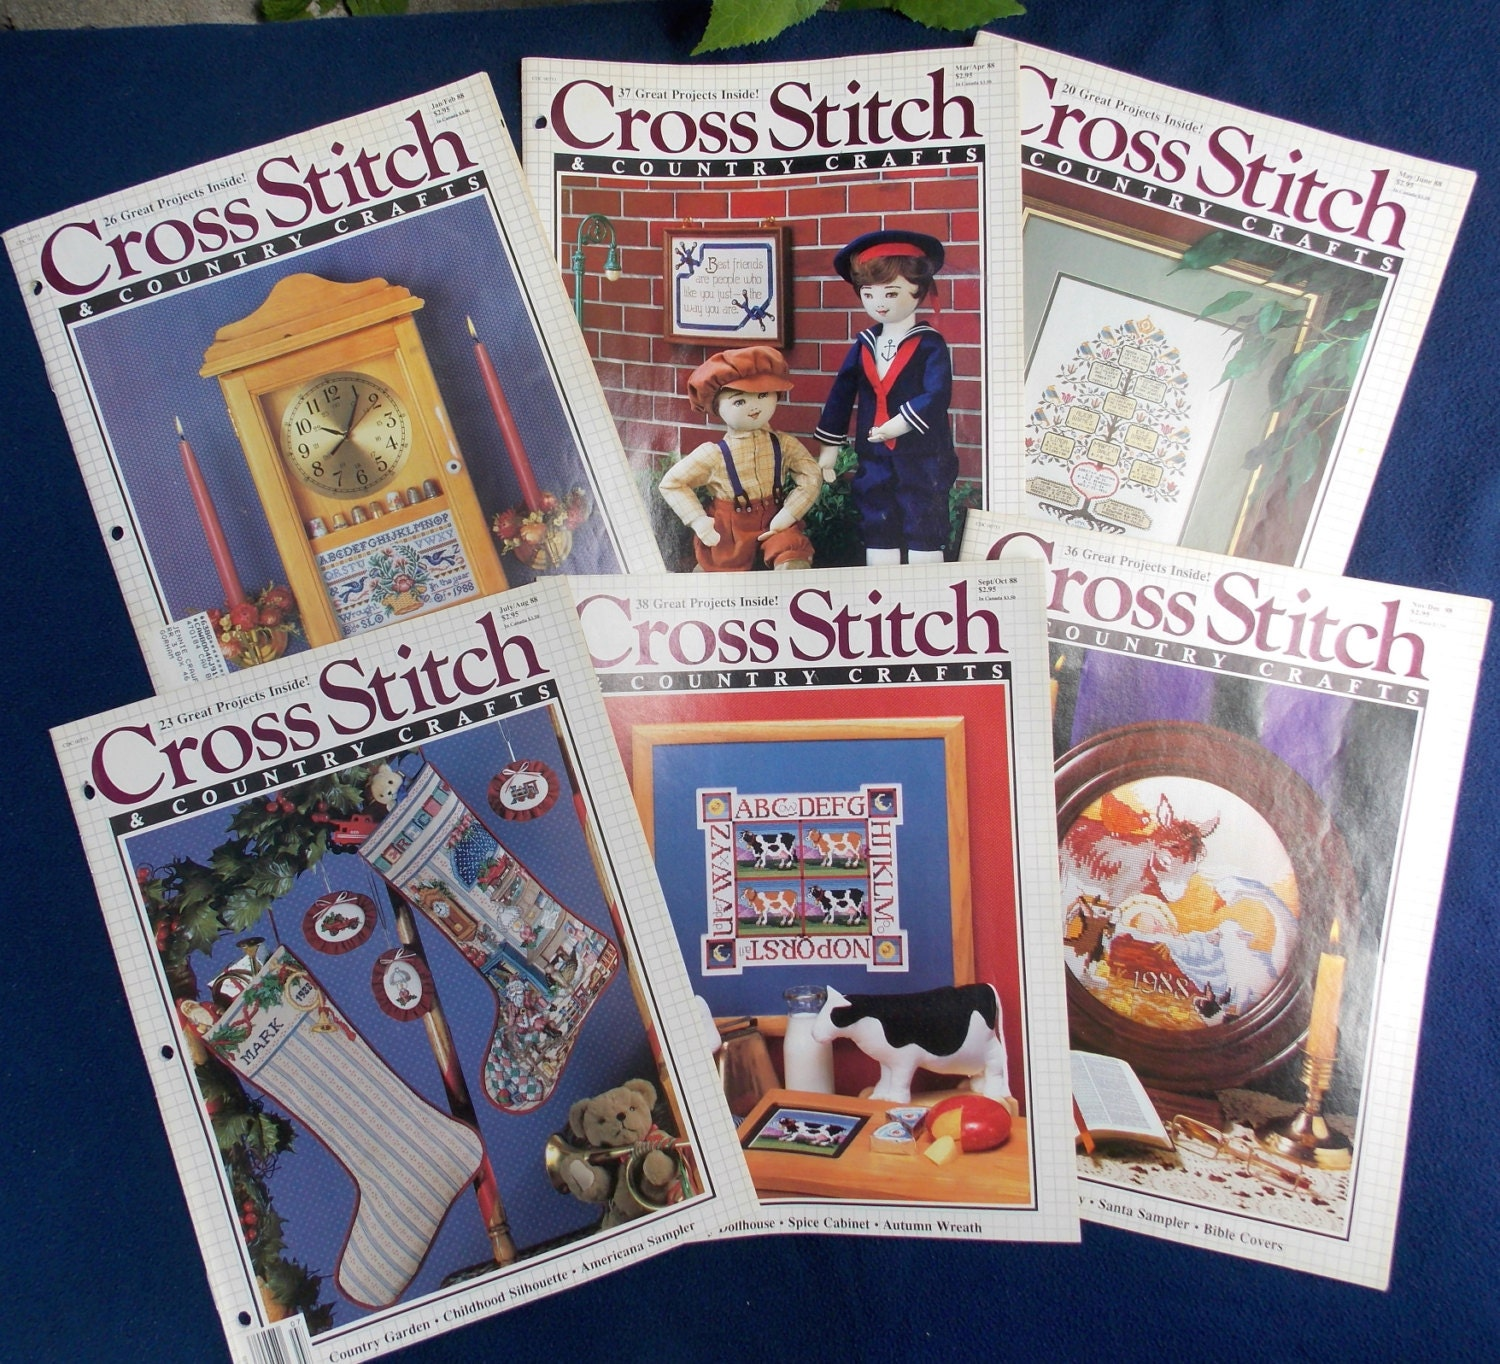 Cross stitch country crafts magazine back issues - 1988 Cross Stitch And Country Crafts Magazine 6 Vintage Issues Sold By Grammiejennie